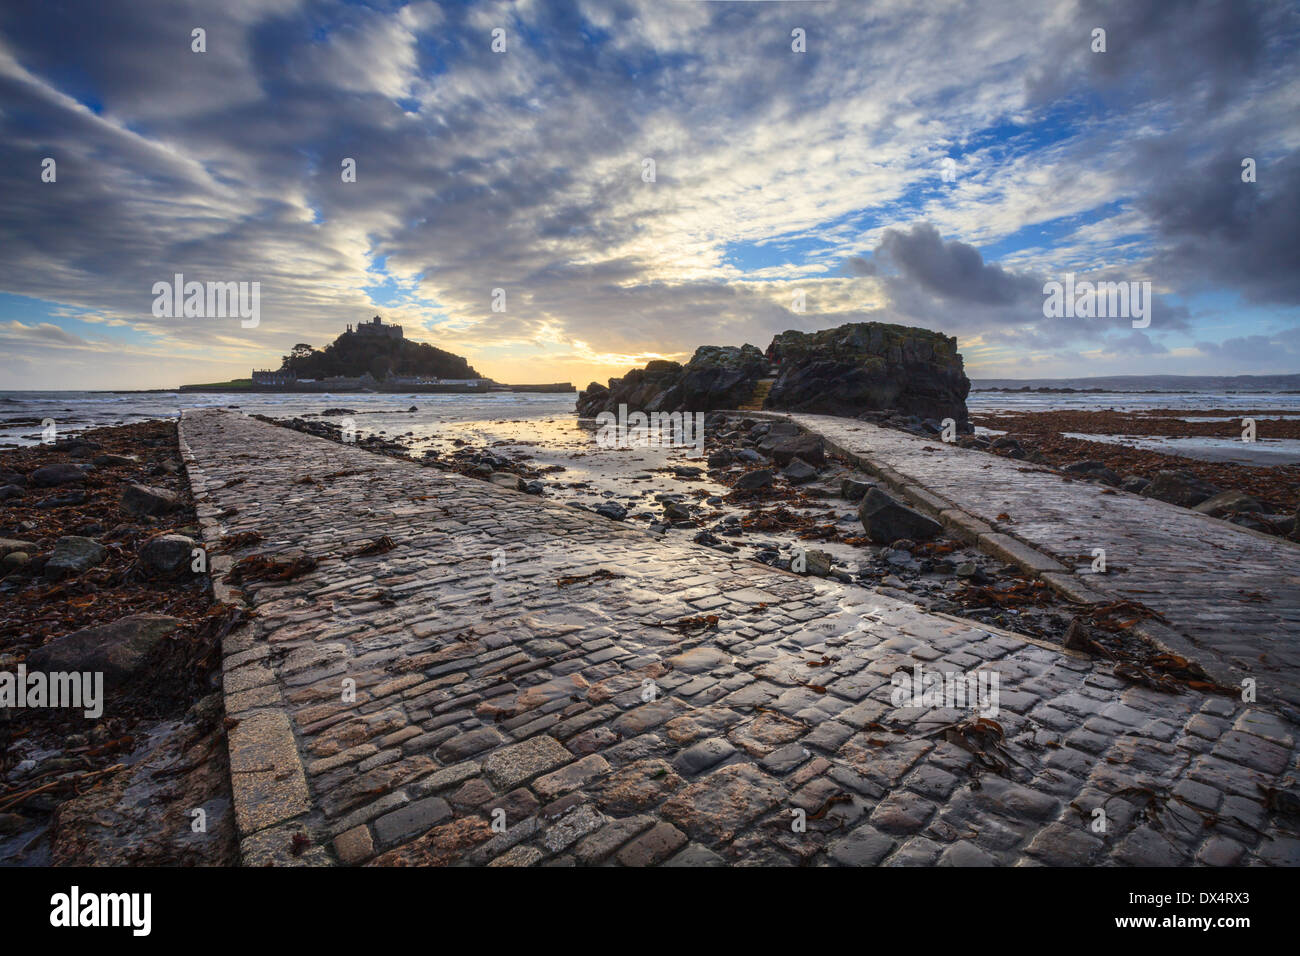 St Michael's Mount in Cornwall captured at sunset from the causeway - Stock Image